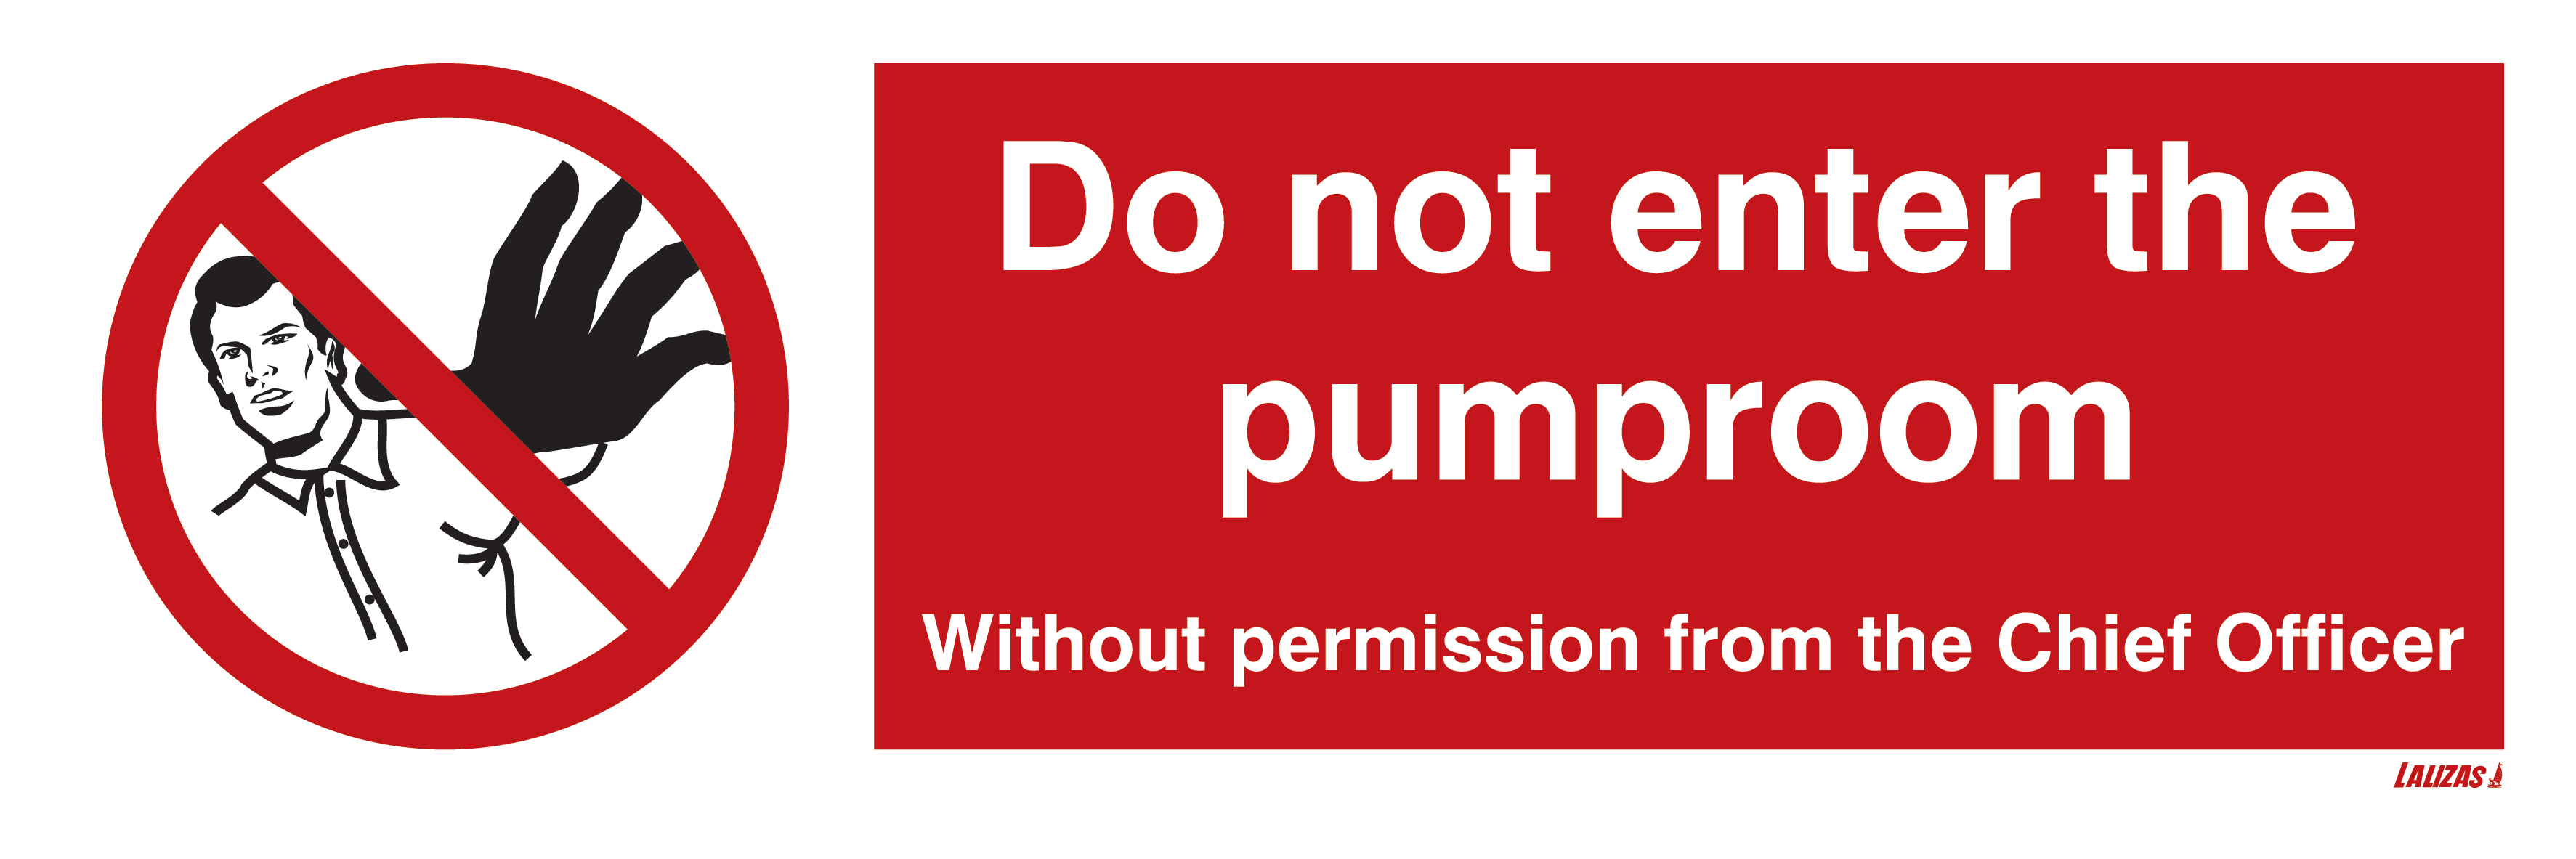 Do Not Enter The Pump Room